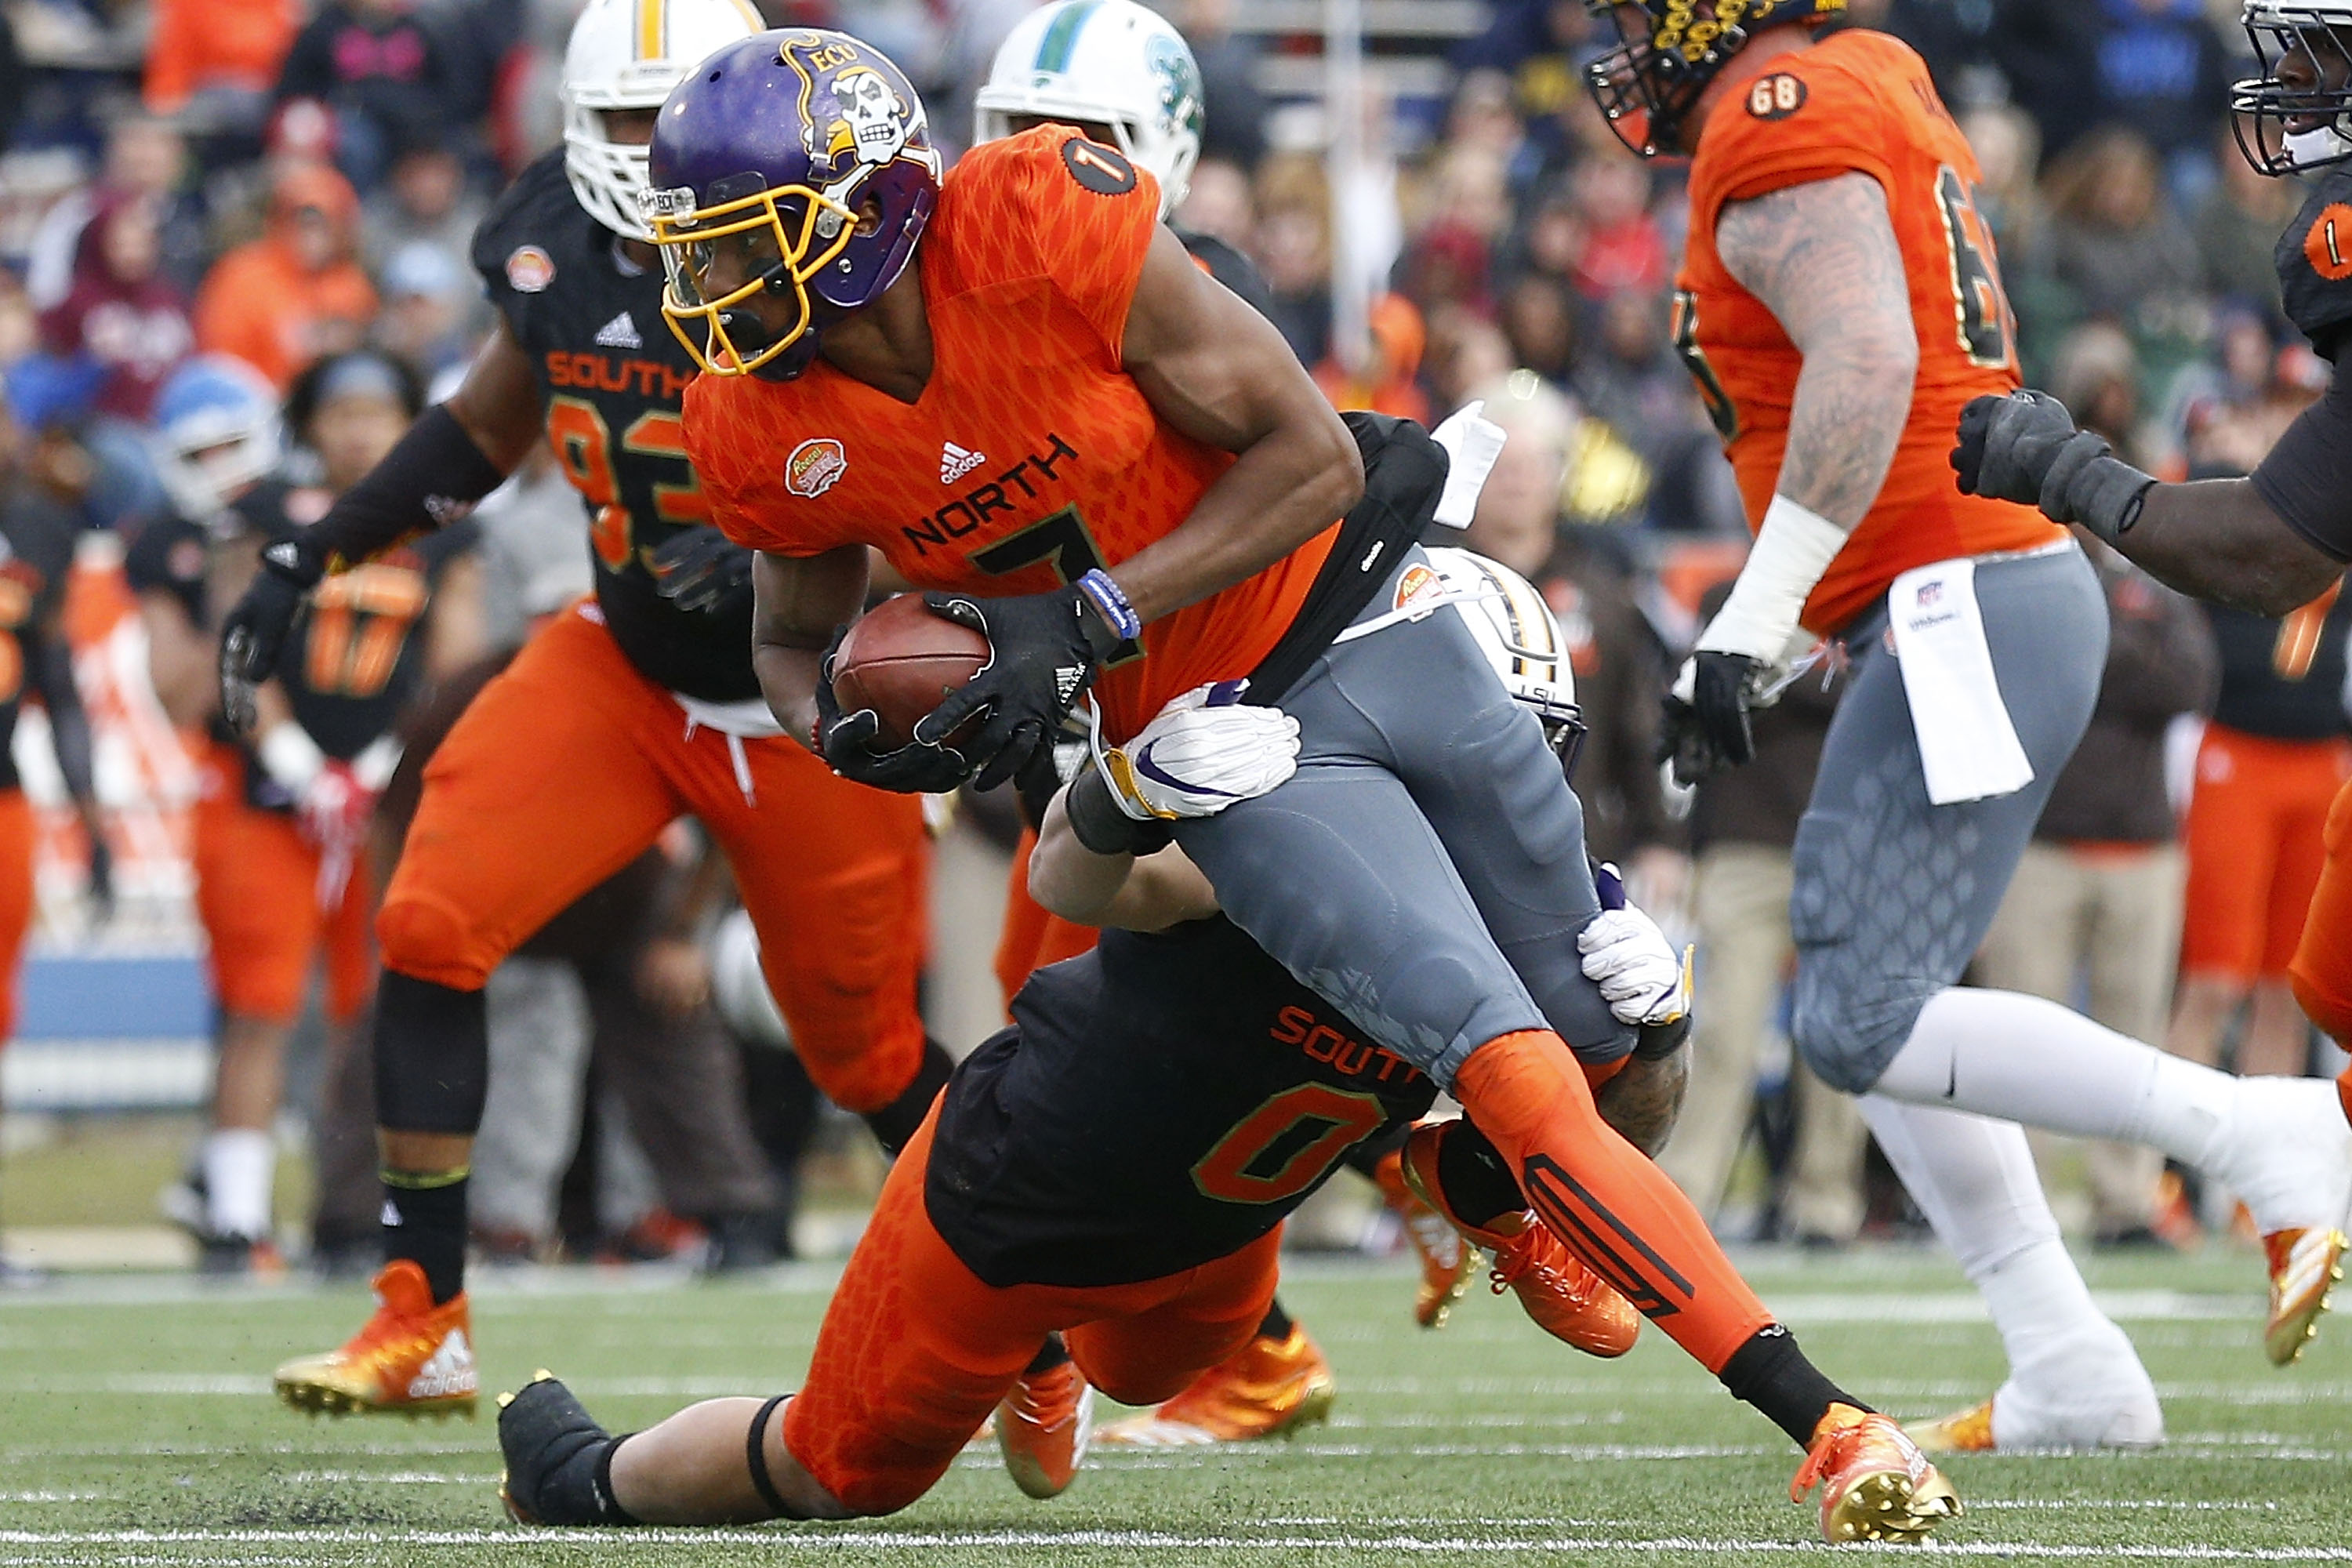 Zay Jones caught an FBS record 399 passes during his time at East Carolina. (Getty Images)